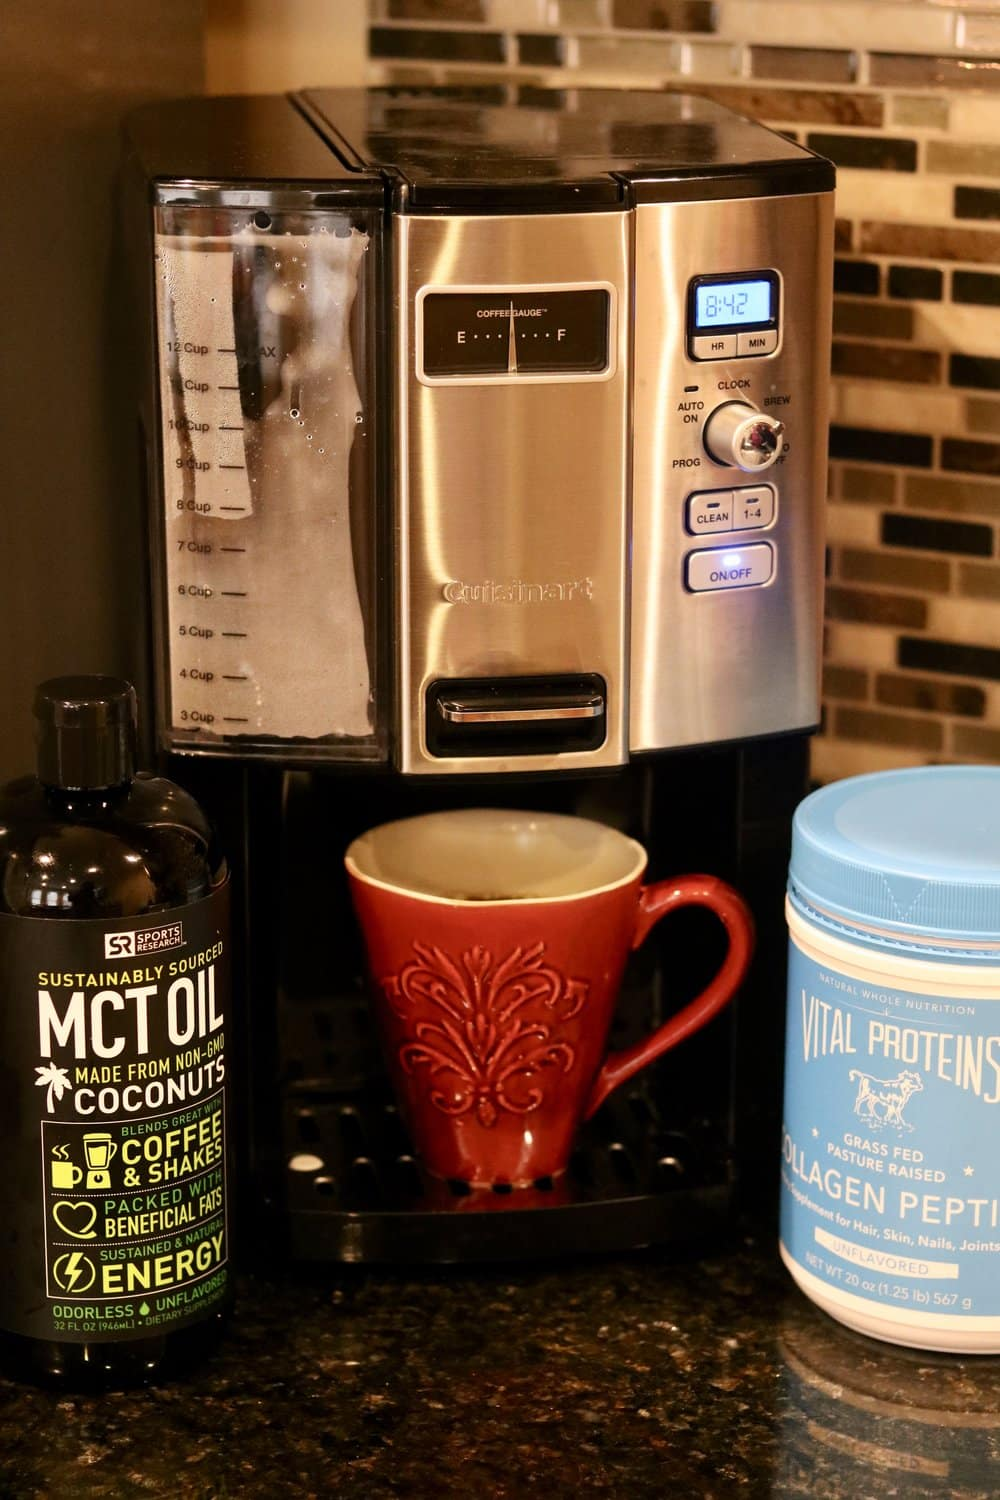 A red cup of coffee in front of a coffee maker with a bottle of Sports Research MCT Oil and a container of Vital Proteins Collagen Peptides for Butter Coffee (Bulletproof Coffee)